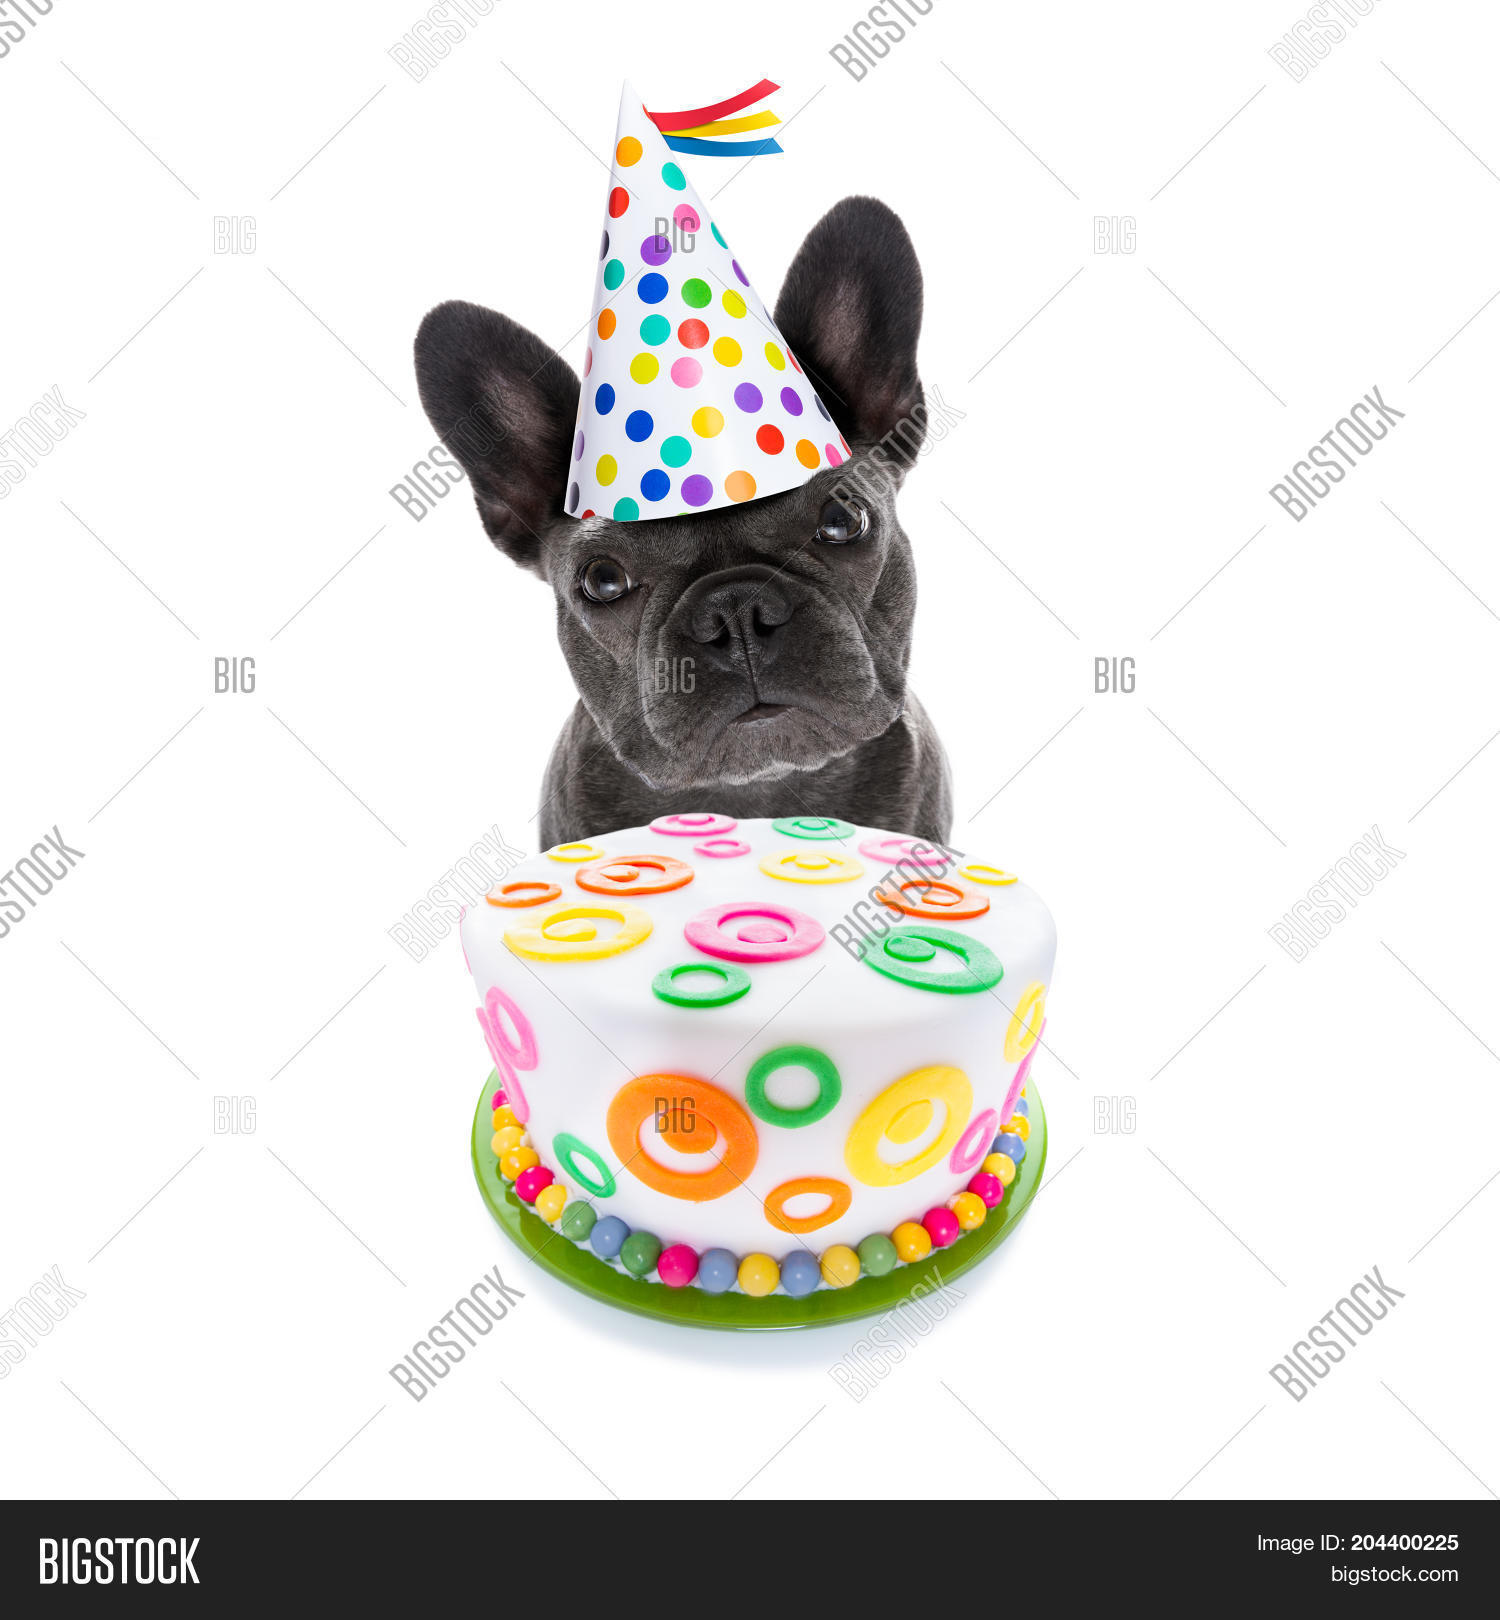 French Bulldog Dog Hungry For A Happy Birthday Cake Wearing Party Hat Isolated On White Background